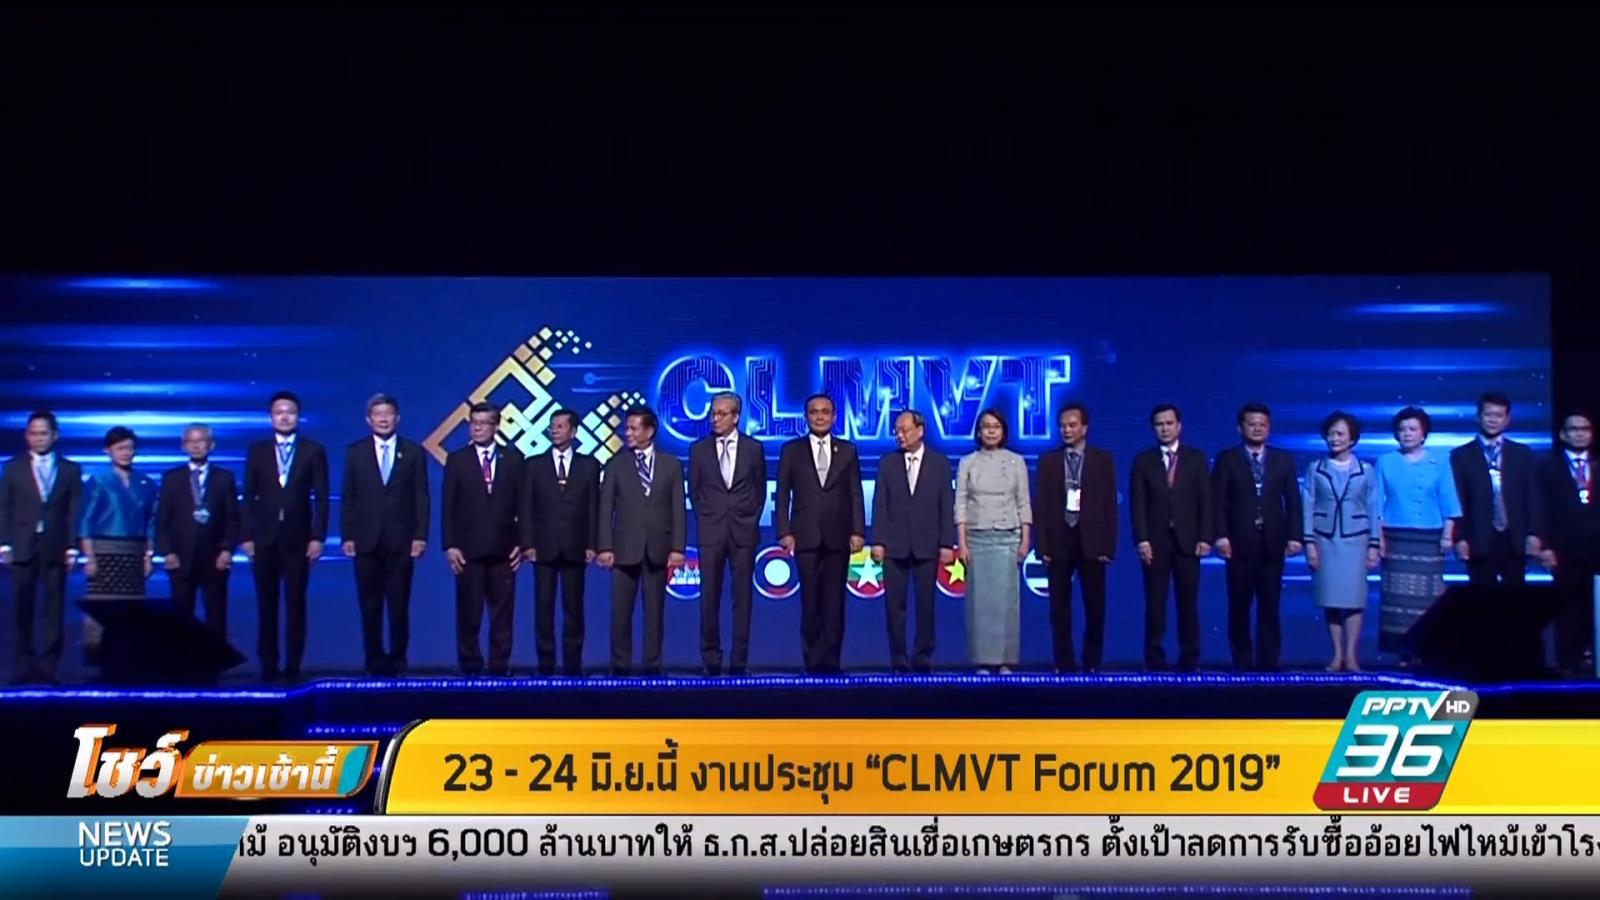 การประชุม CLMVT Forum 2019: CLMVT as the New Value Chain Hub of Asia